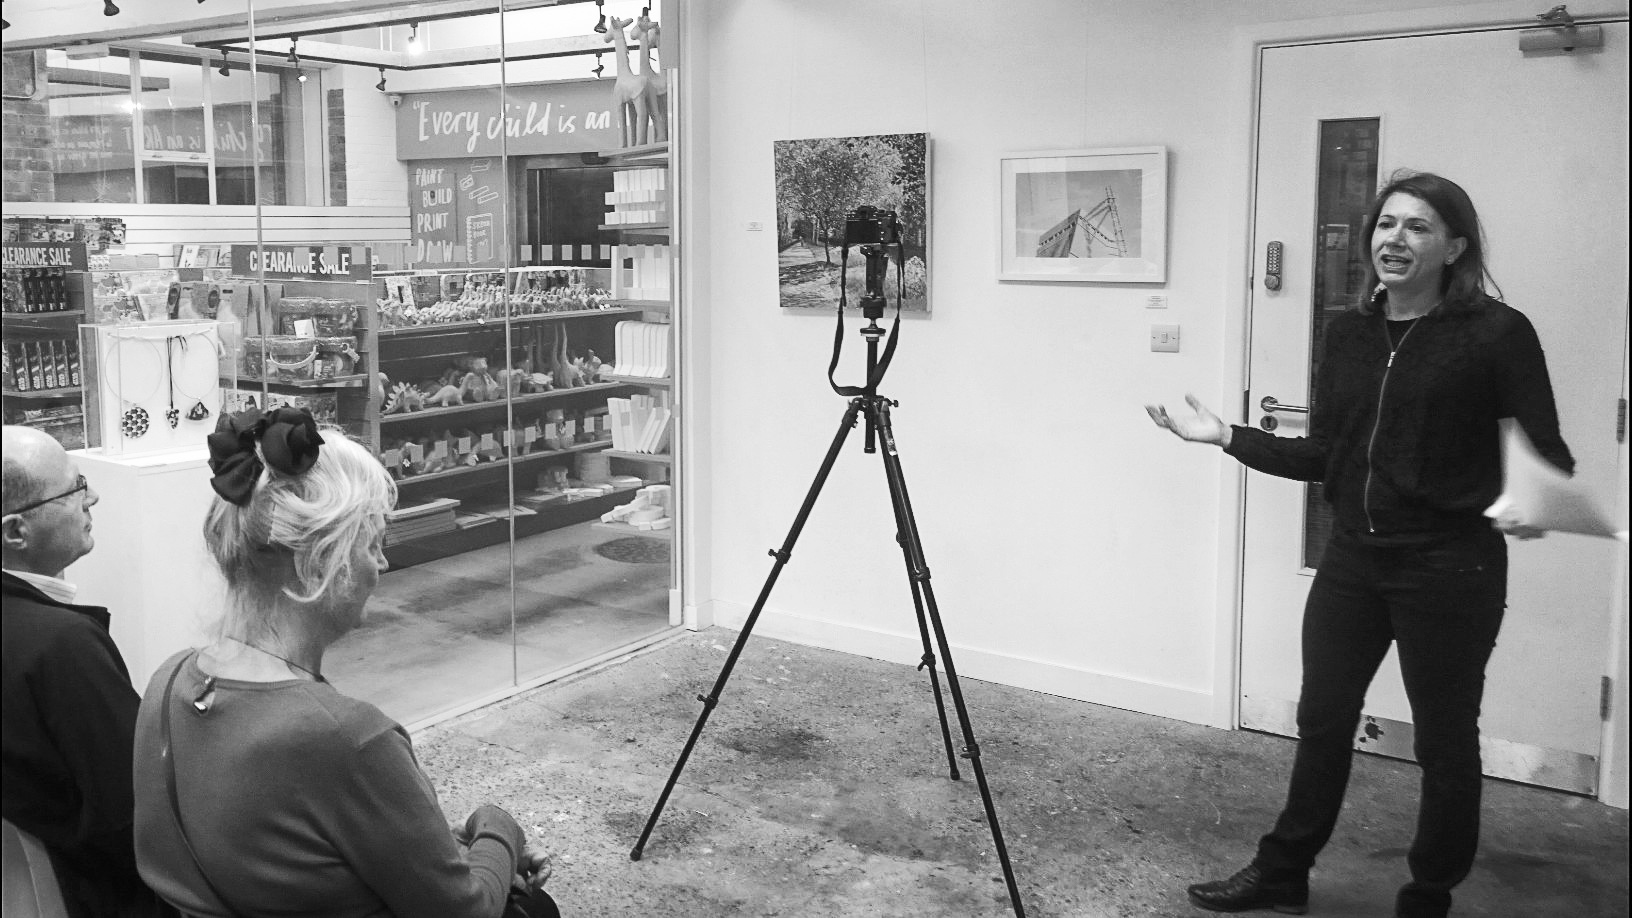 Giving a talk at Cass Art's flagship store in Islington: 'How to photograph your artwork'